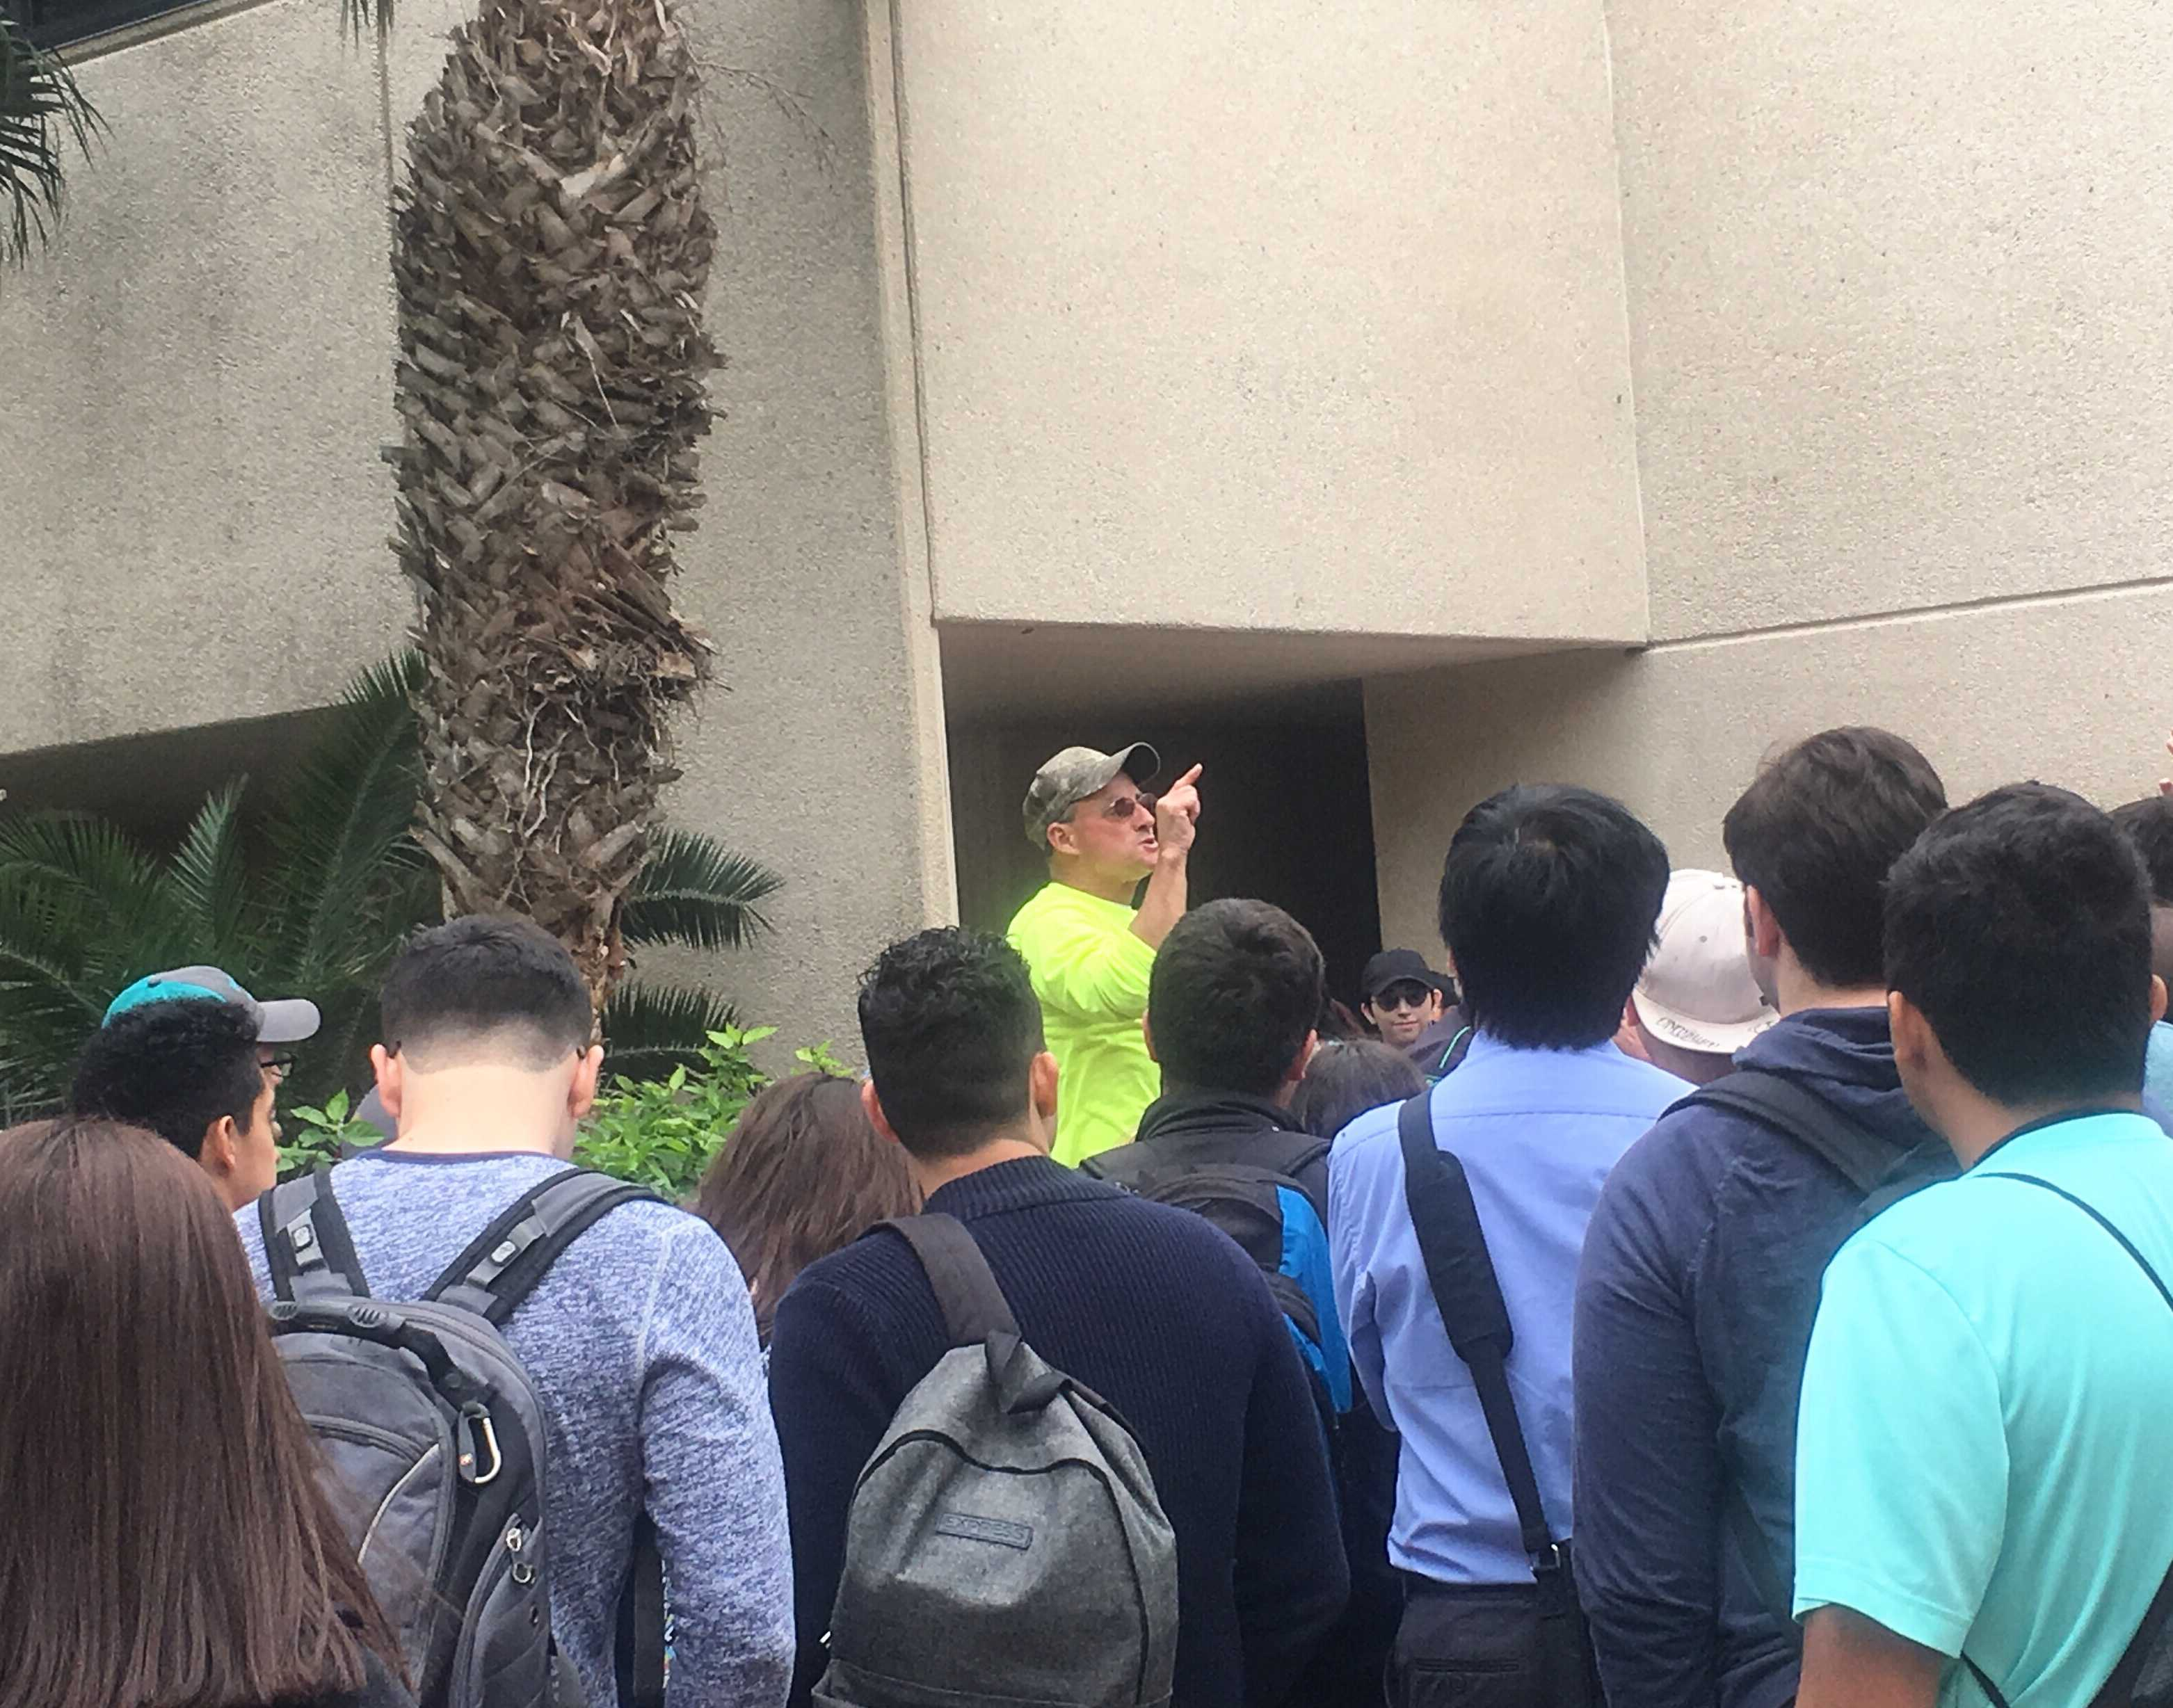 Controversial preacher visits campus